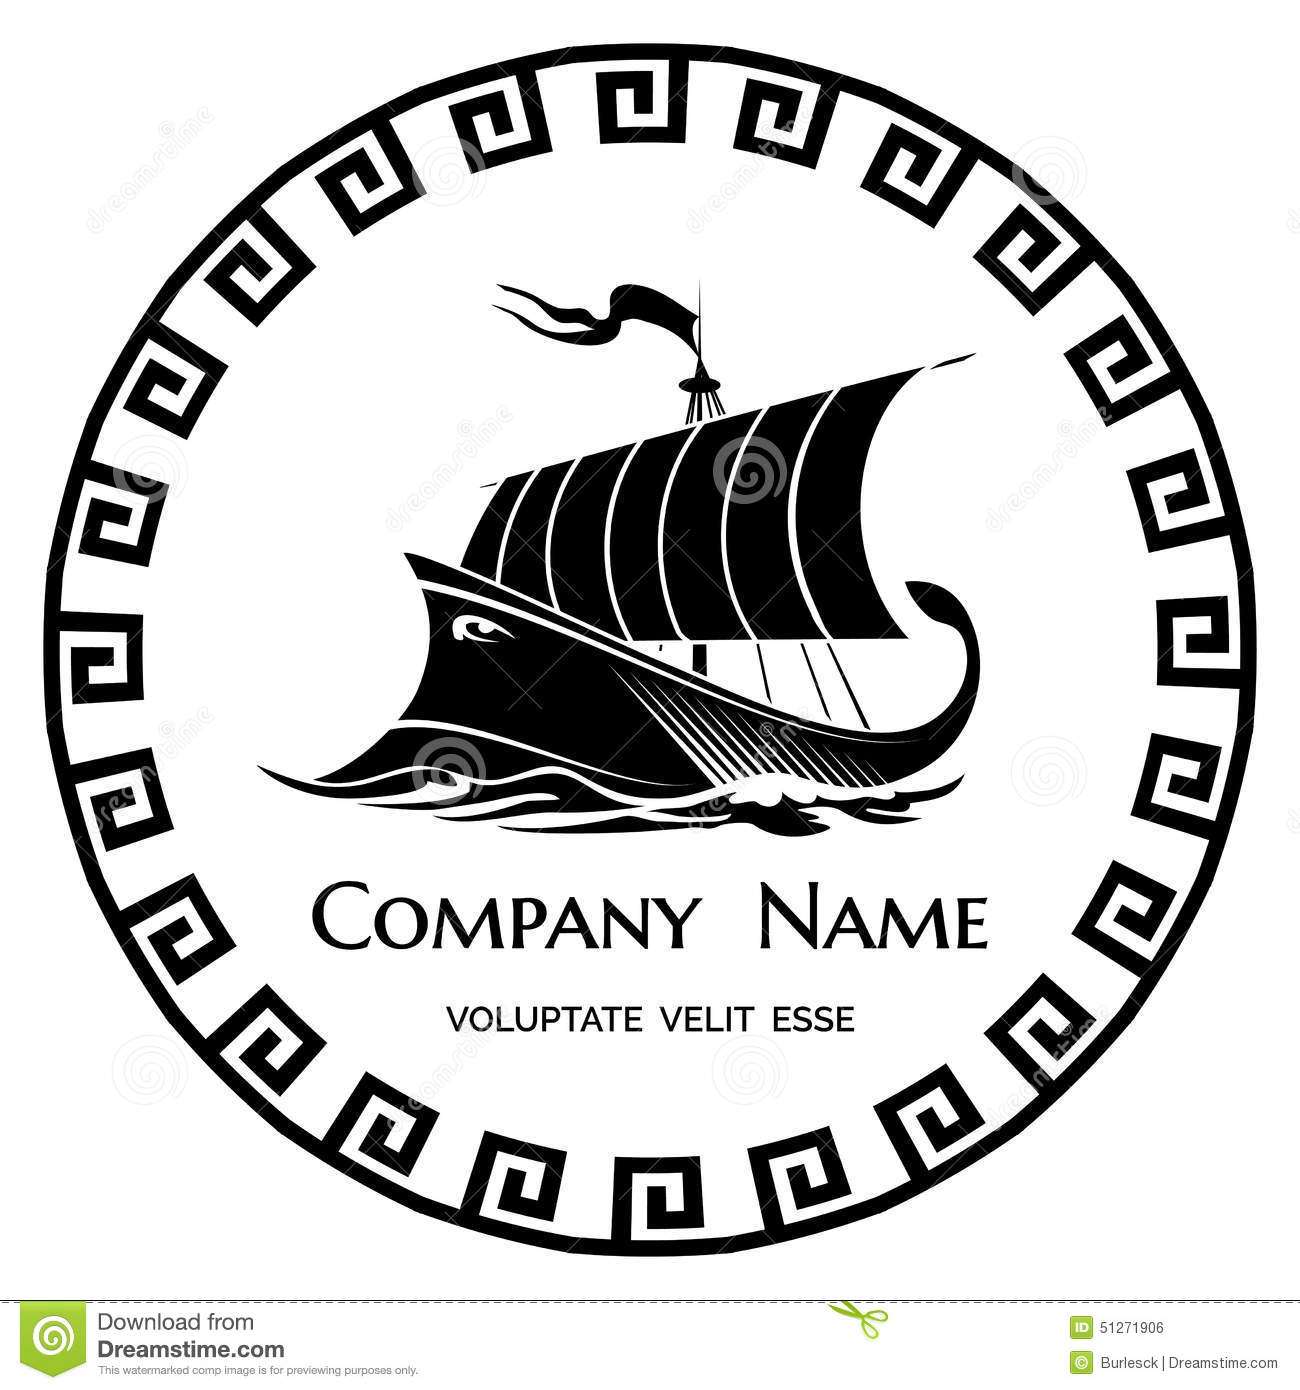 Ancient greek logo clipart graphic Ancient Greek Galley Logo Icon Stock Vector - Image: 51271906 graphic